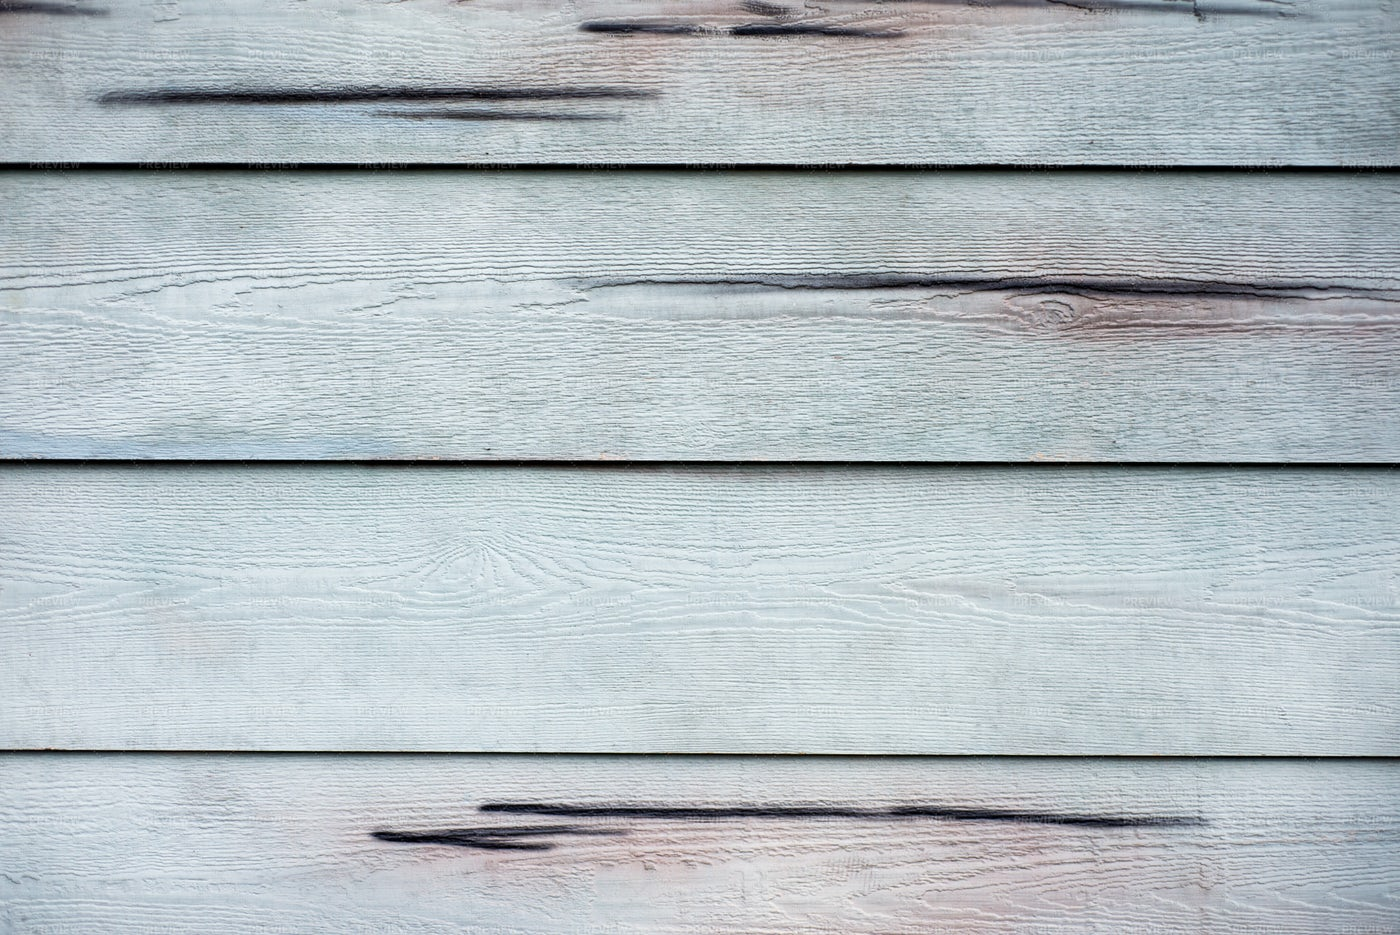 Old Wood Texture Background: Stock Photos